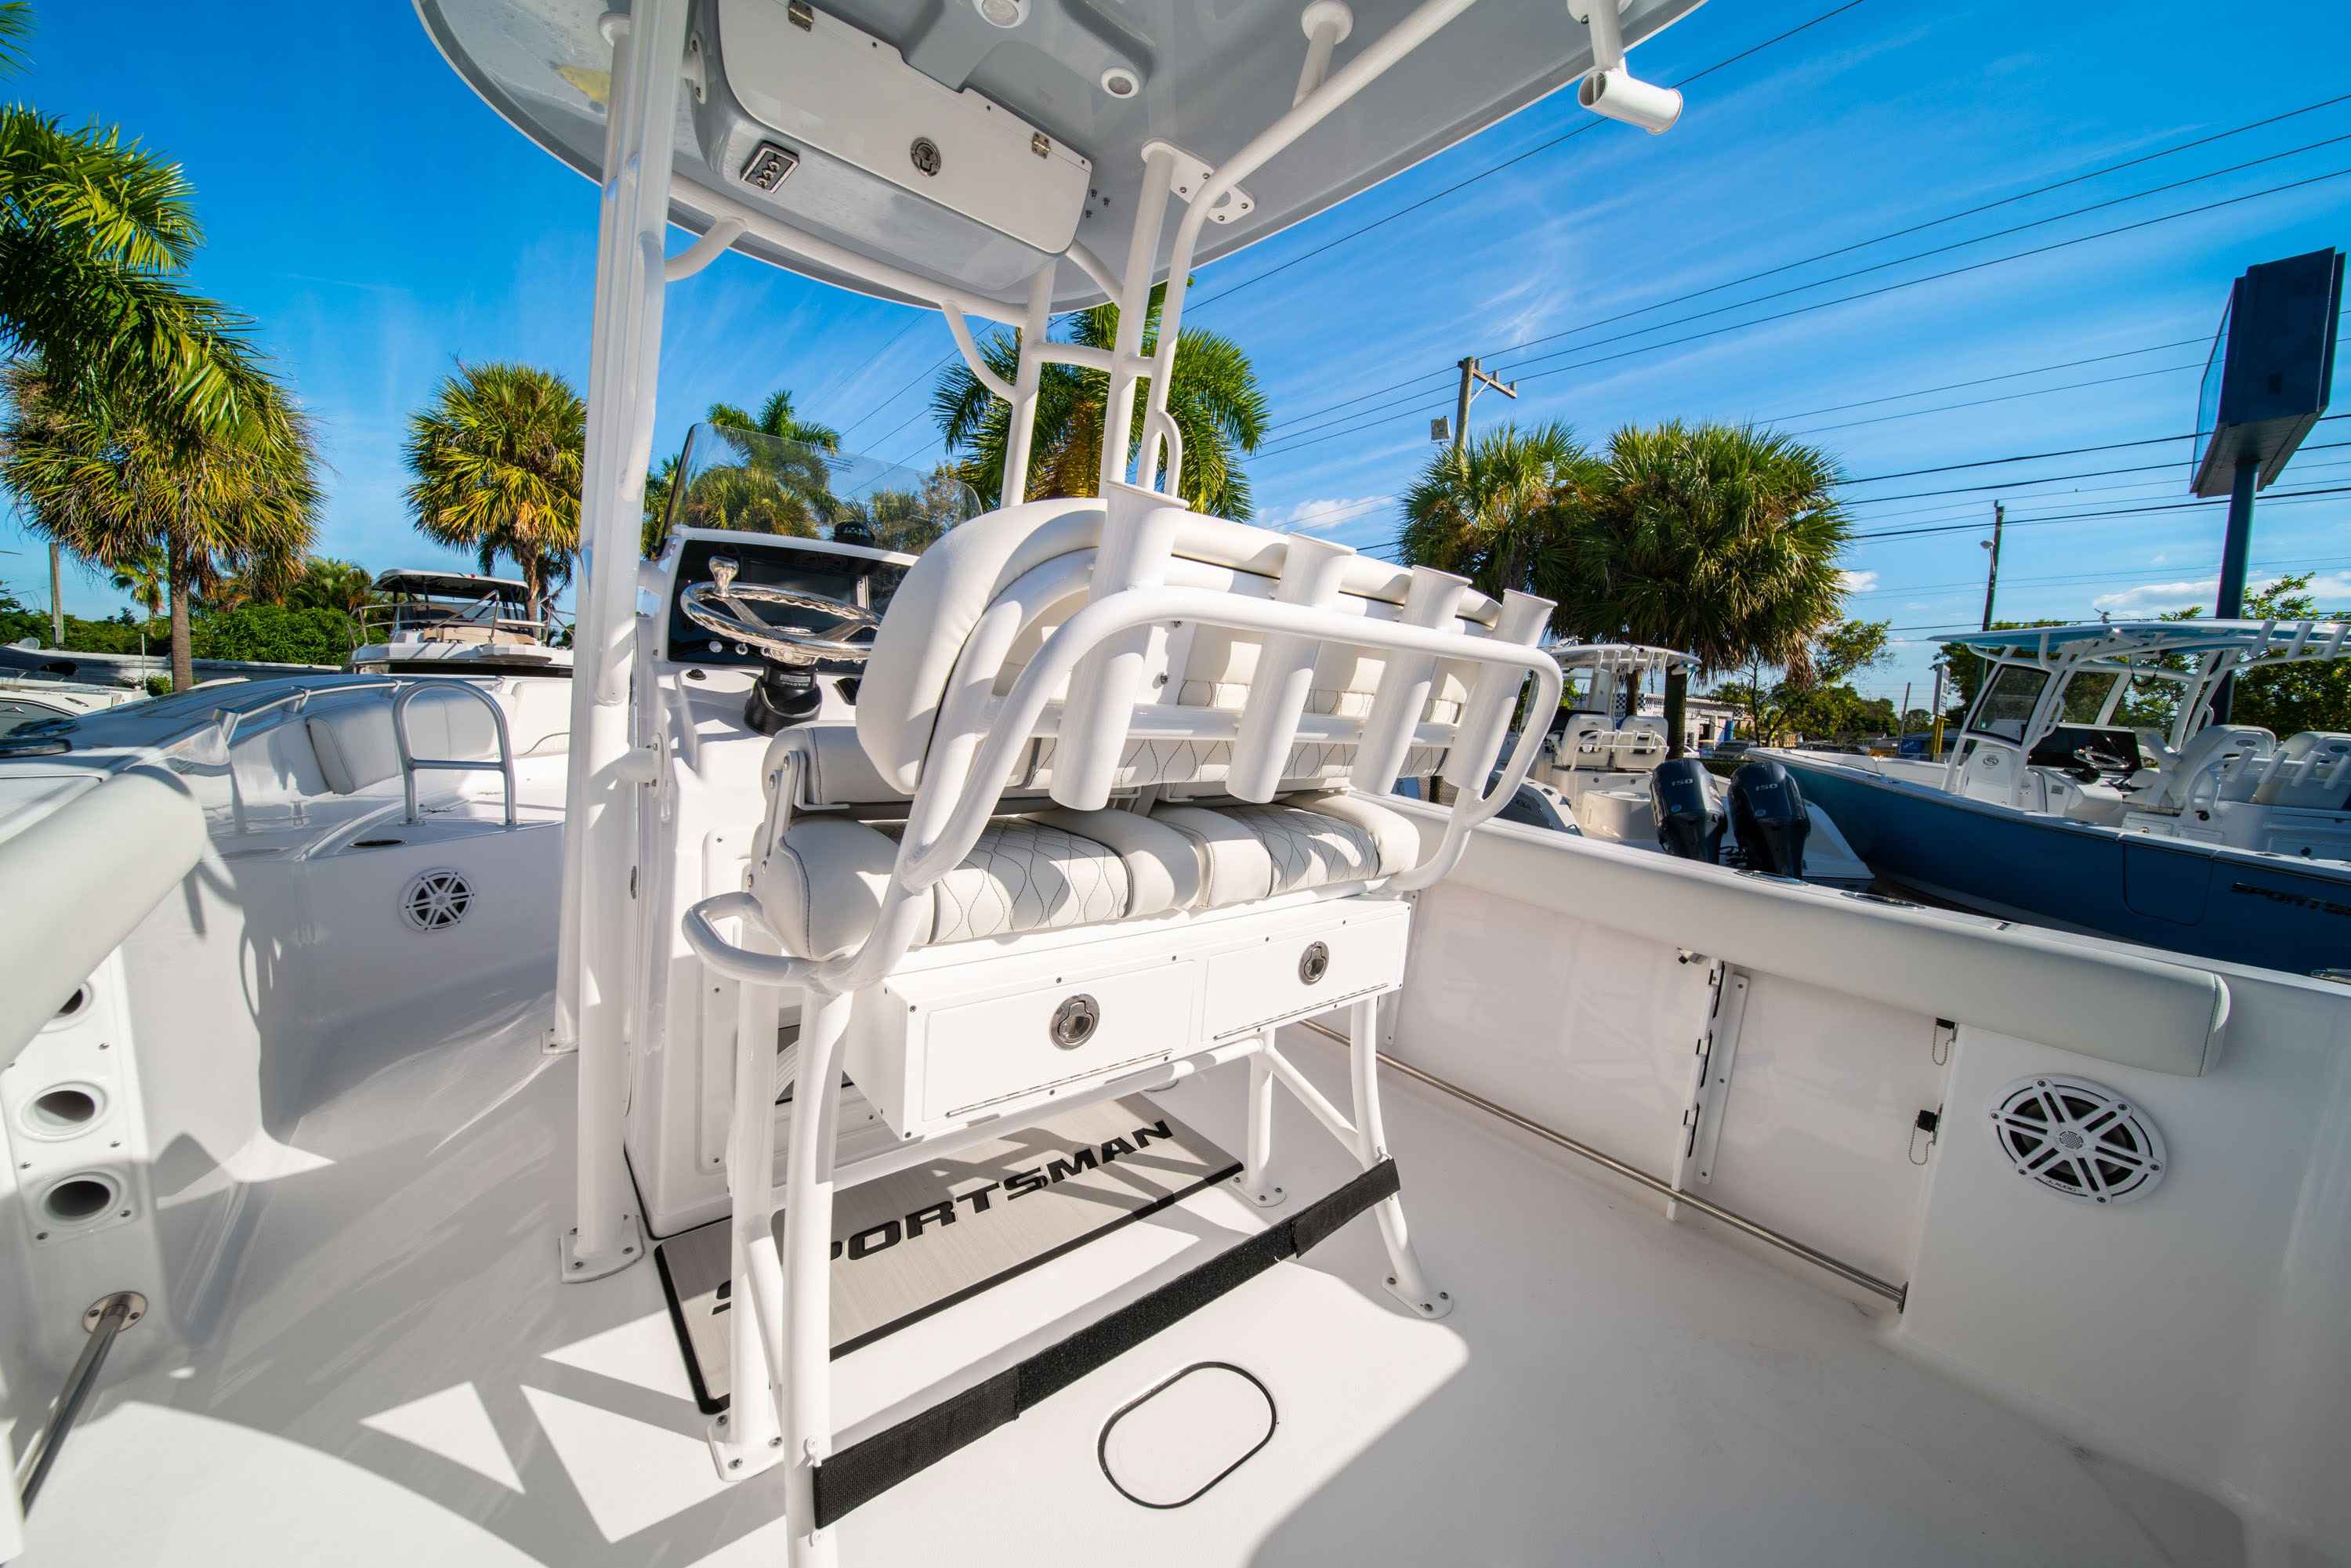 Thumbnail 21 for New 2020 Sportsman Open 232 Center Console boat for sale in West Palm Beach, FL